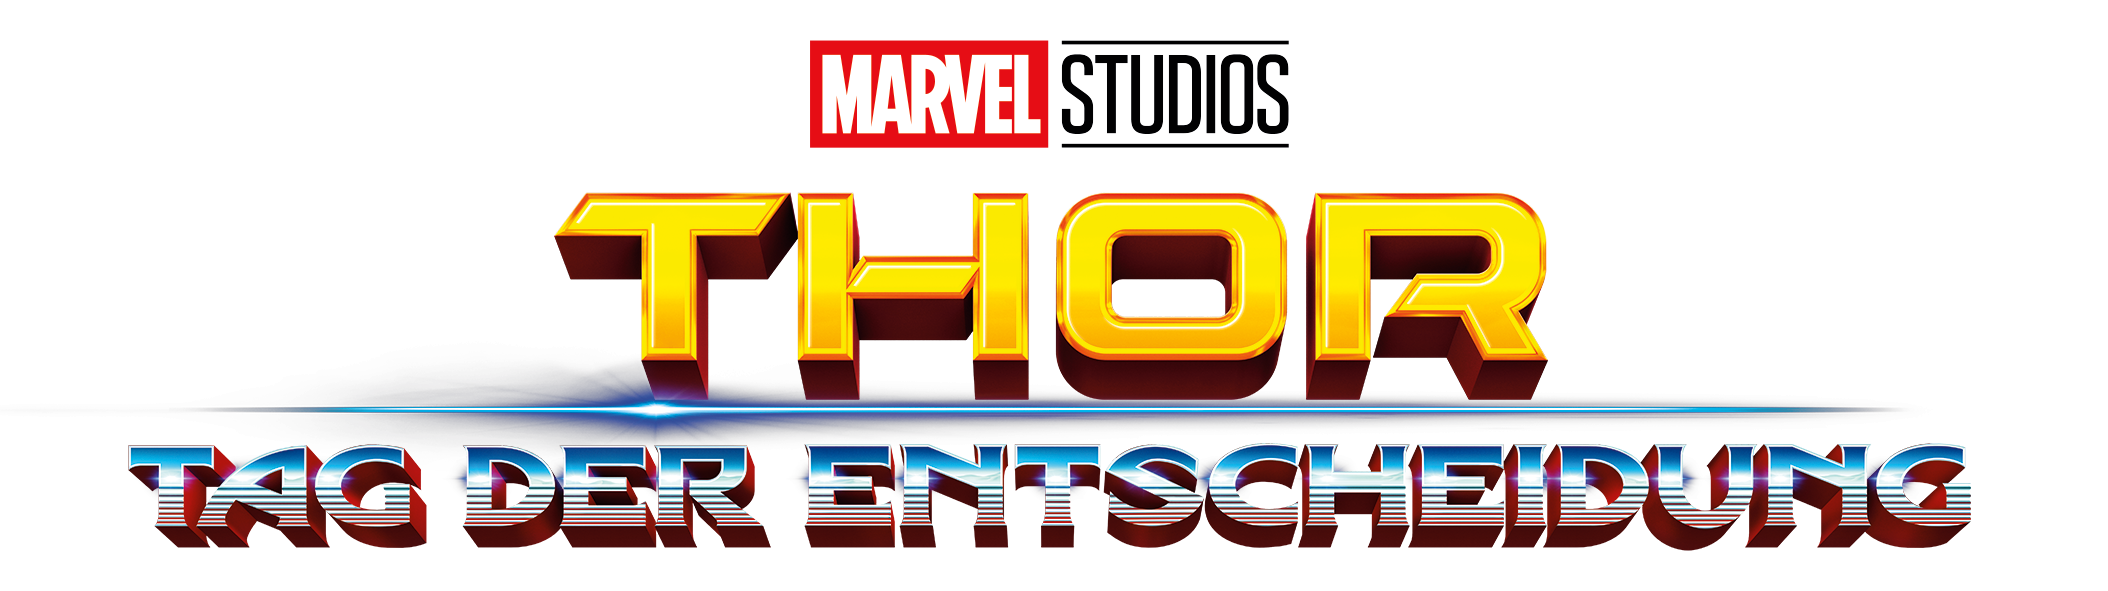 Thor ragnarok logo png. I know this is